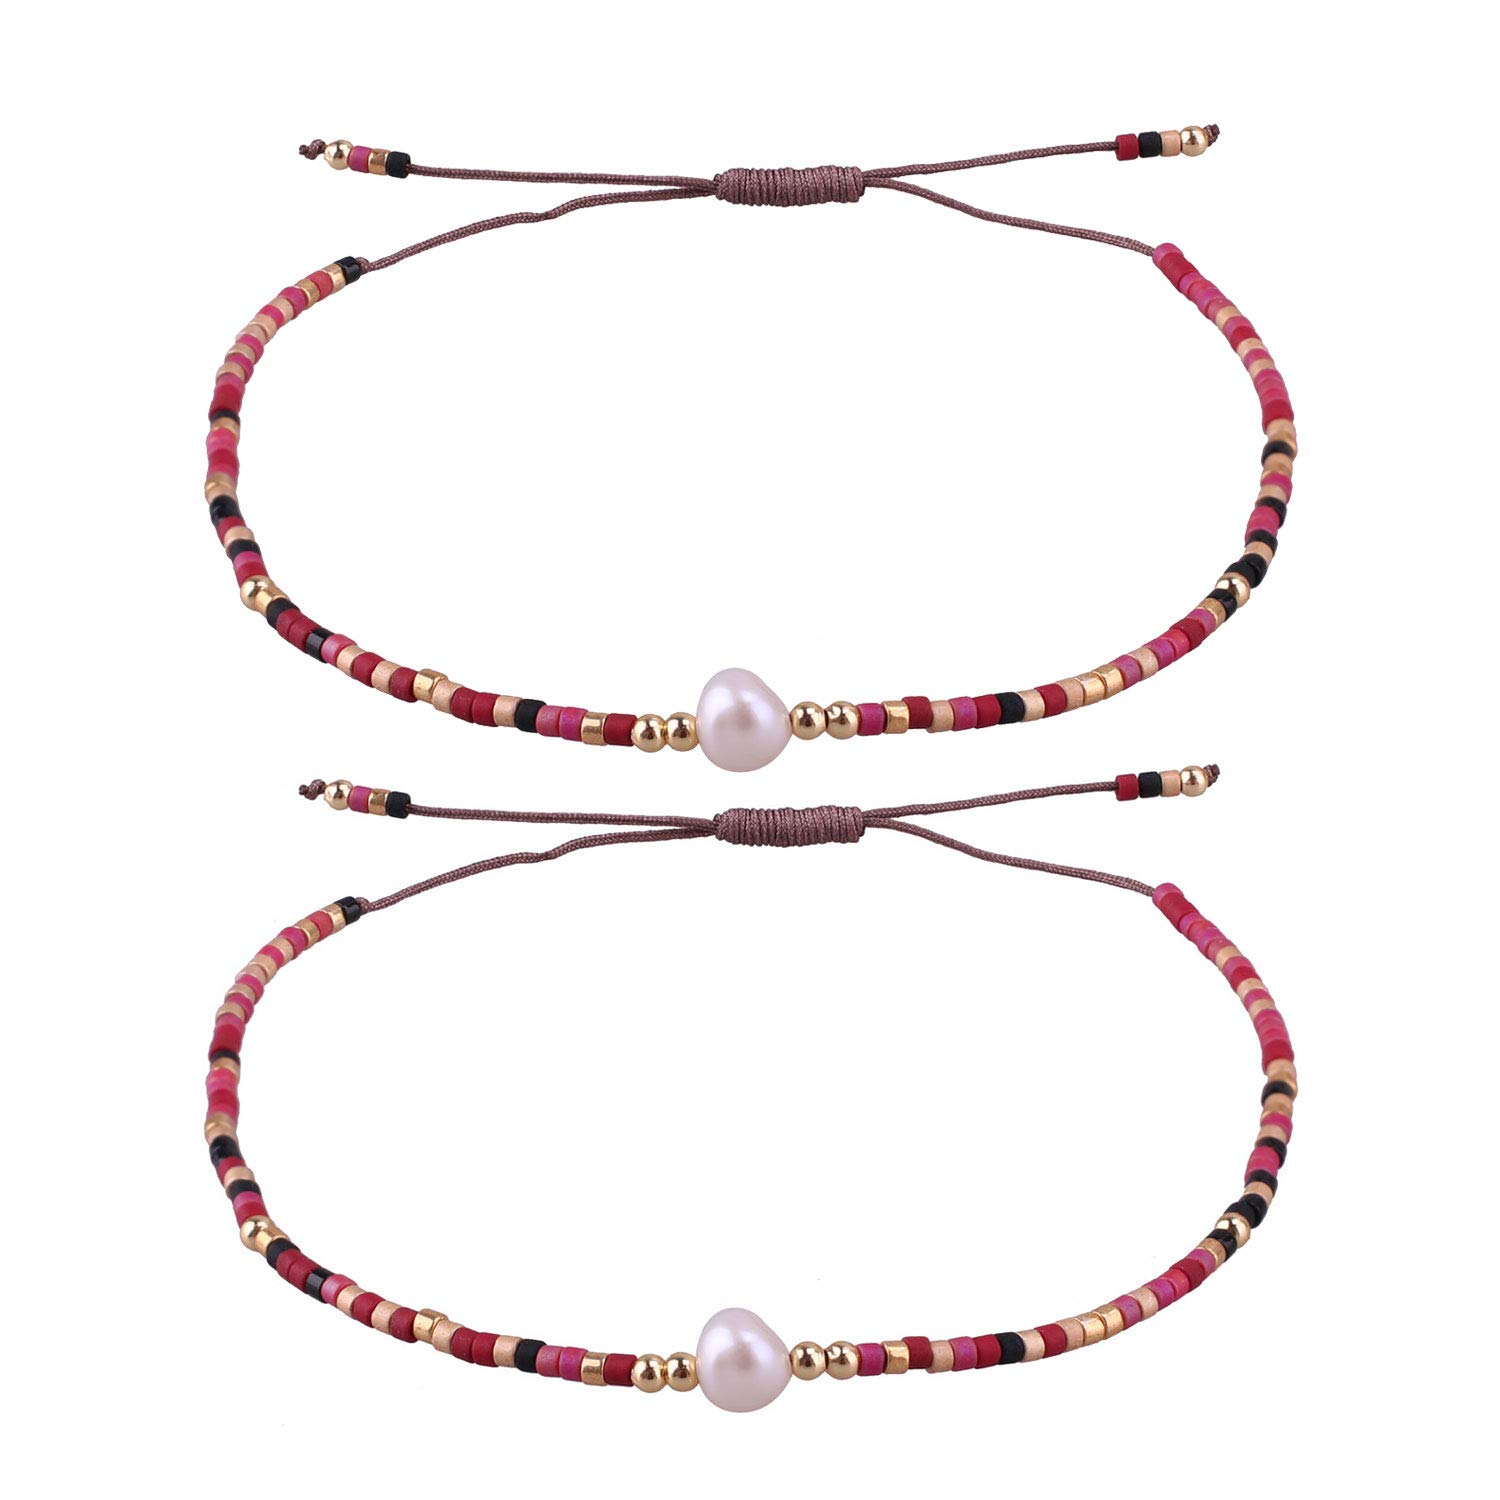 92b5ac2b17 KELITCH 2 Pcs Friendship Bracelets New Seed Beaded Woven Lovers Bracelets  Handmade Strand Bangles Gifts (Color 01C)